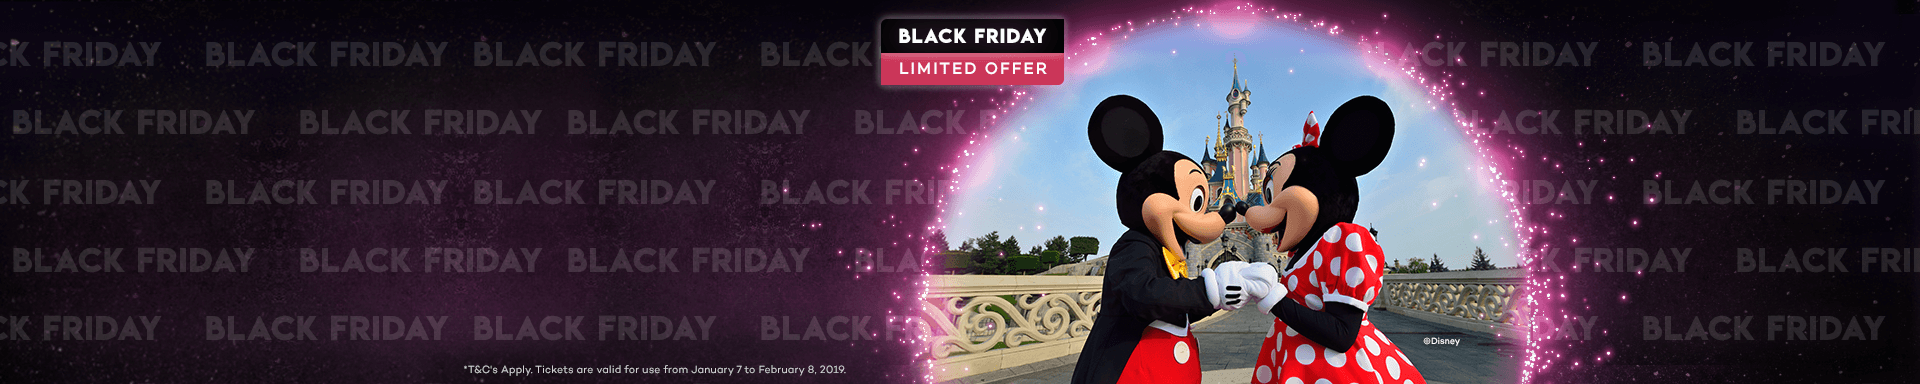 Black Friday Limited Offer -  Disneyland Paris